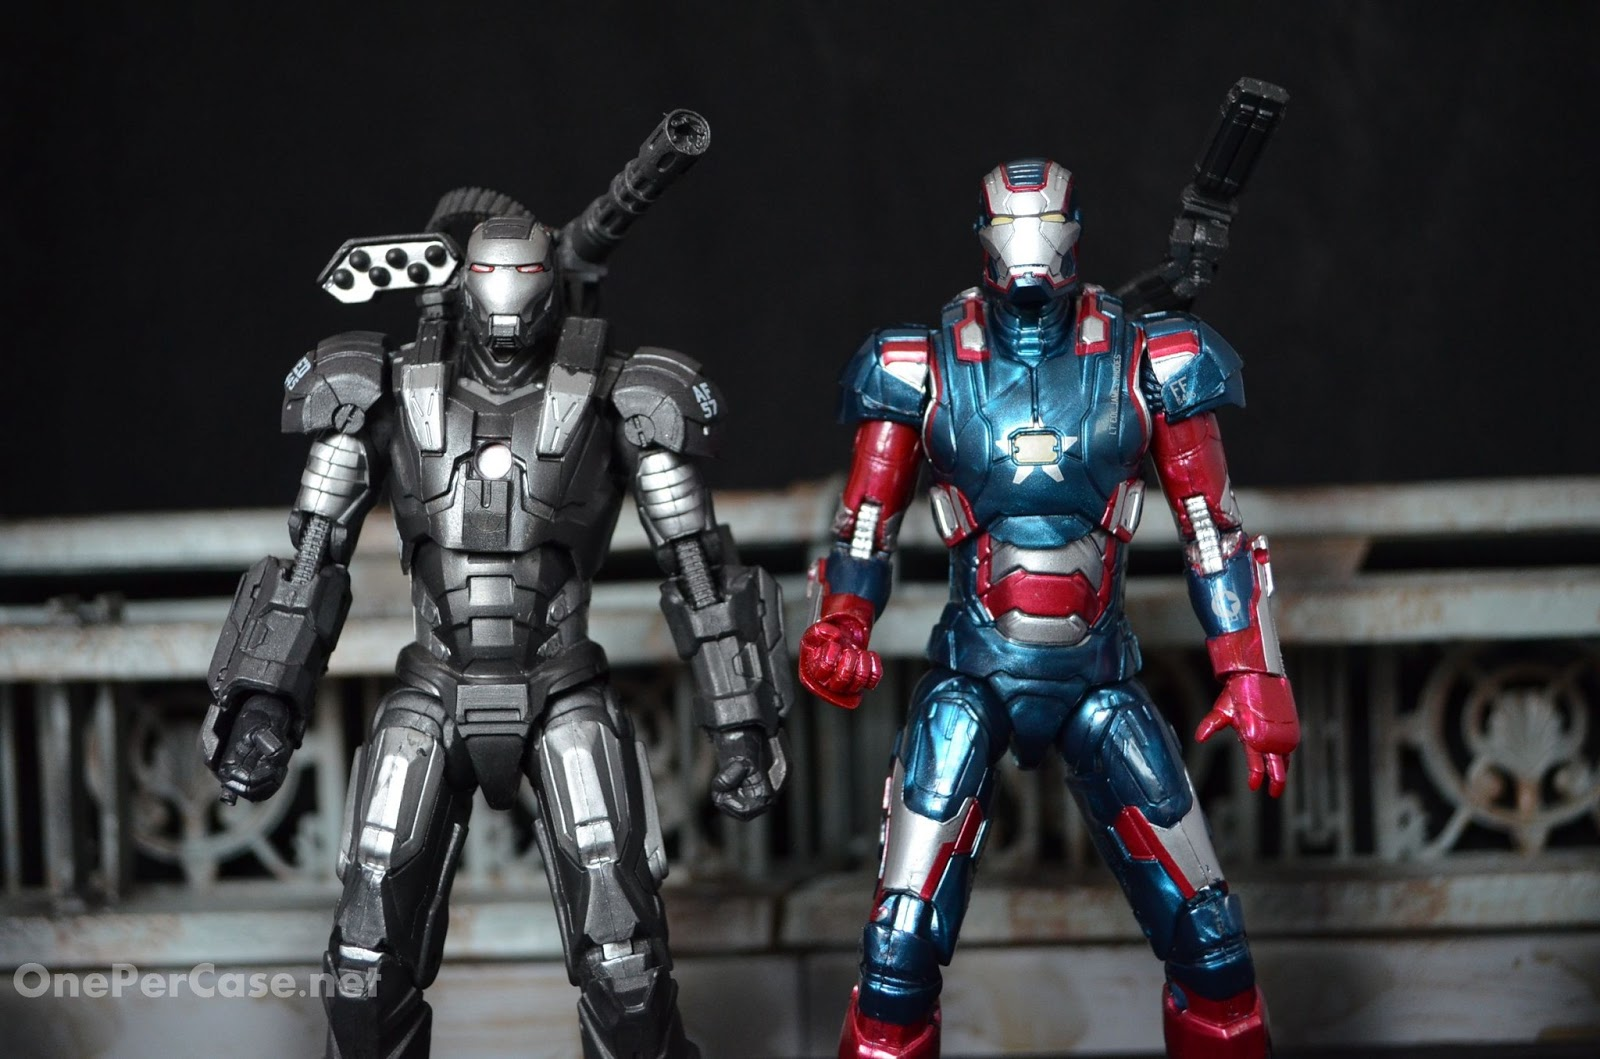 war machine vs iron patriot